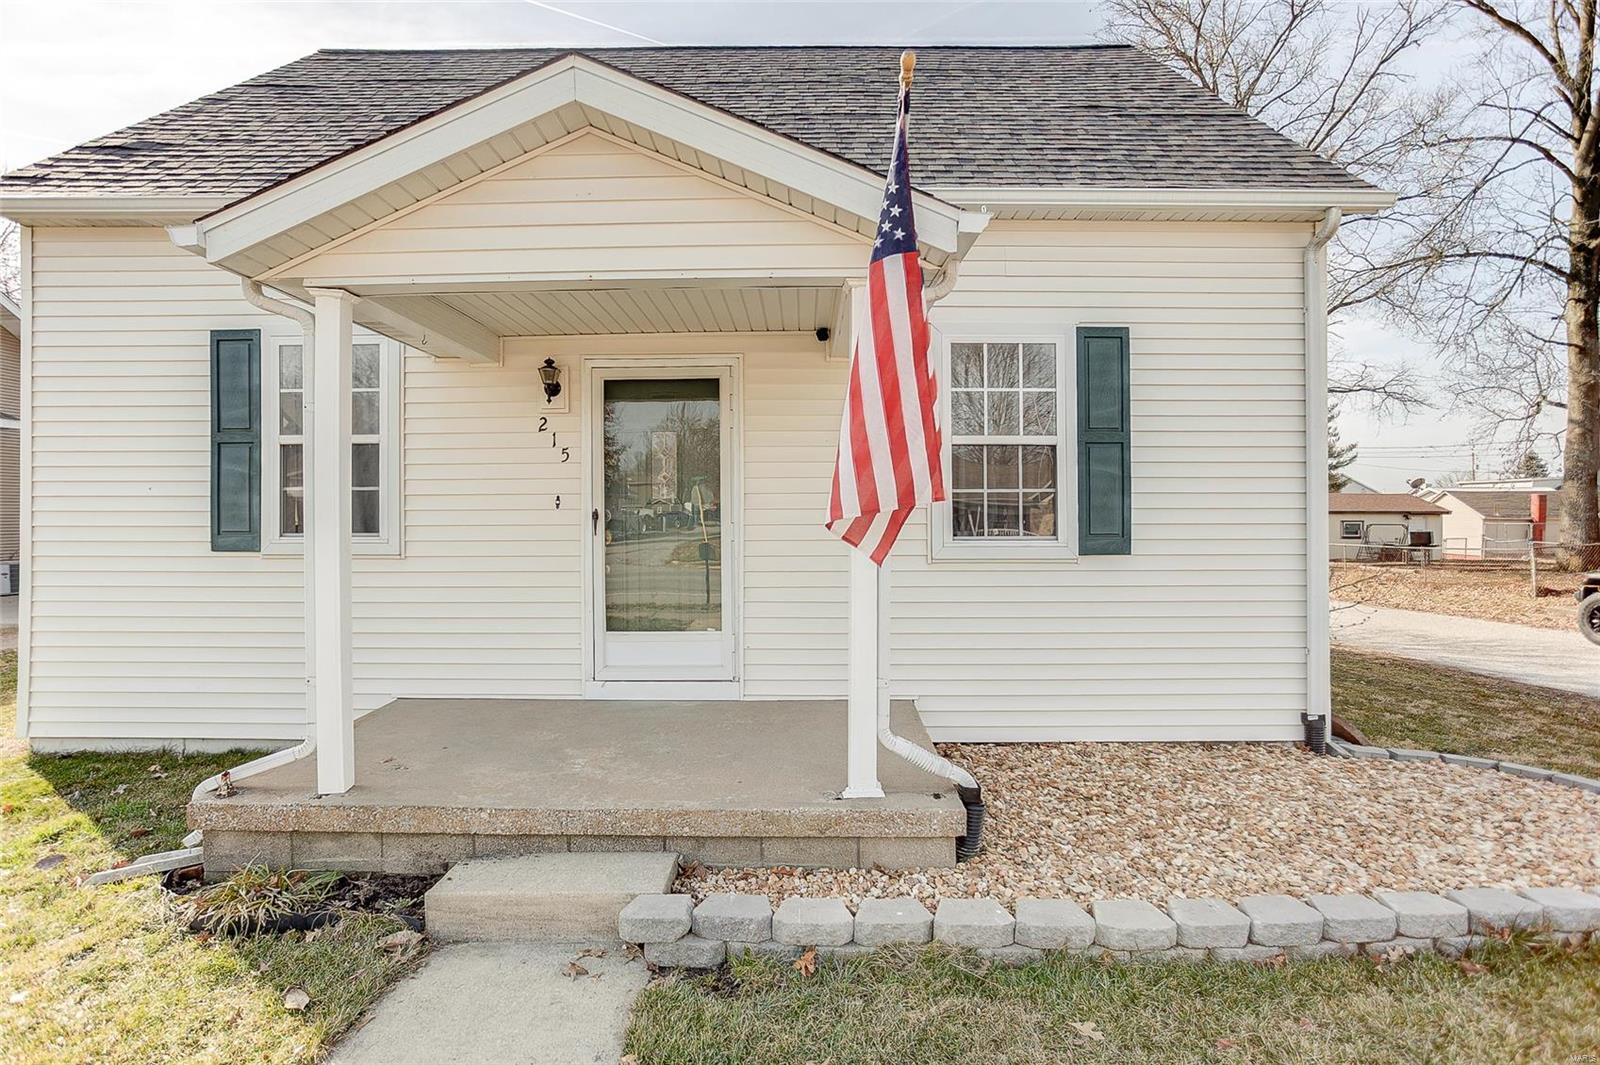 215 W Hanover Street Property Photo - New Baden, IL real estate listing